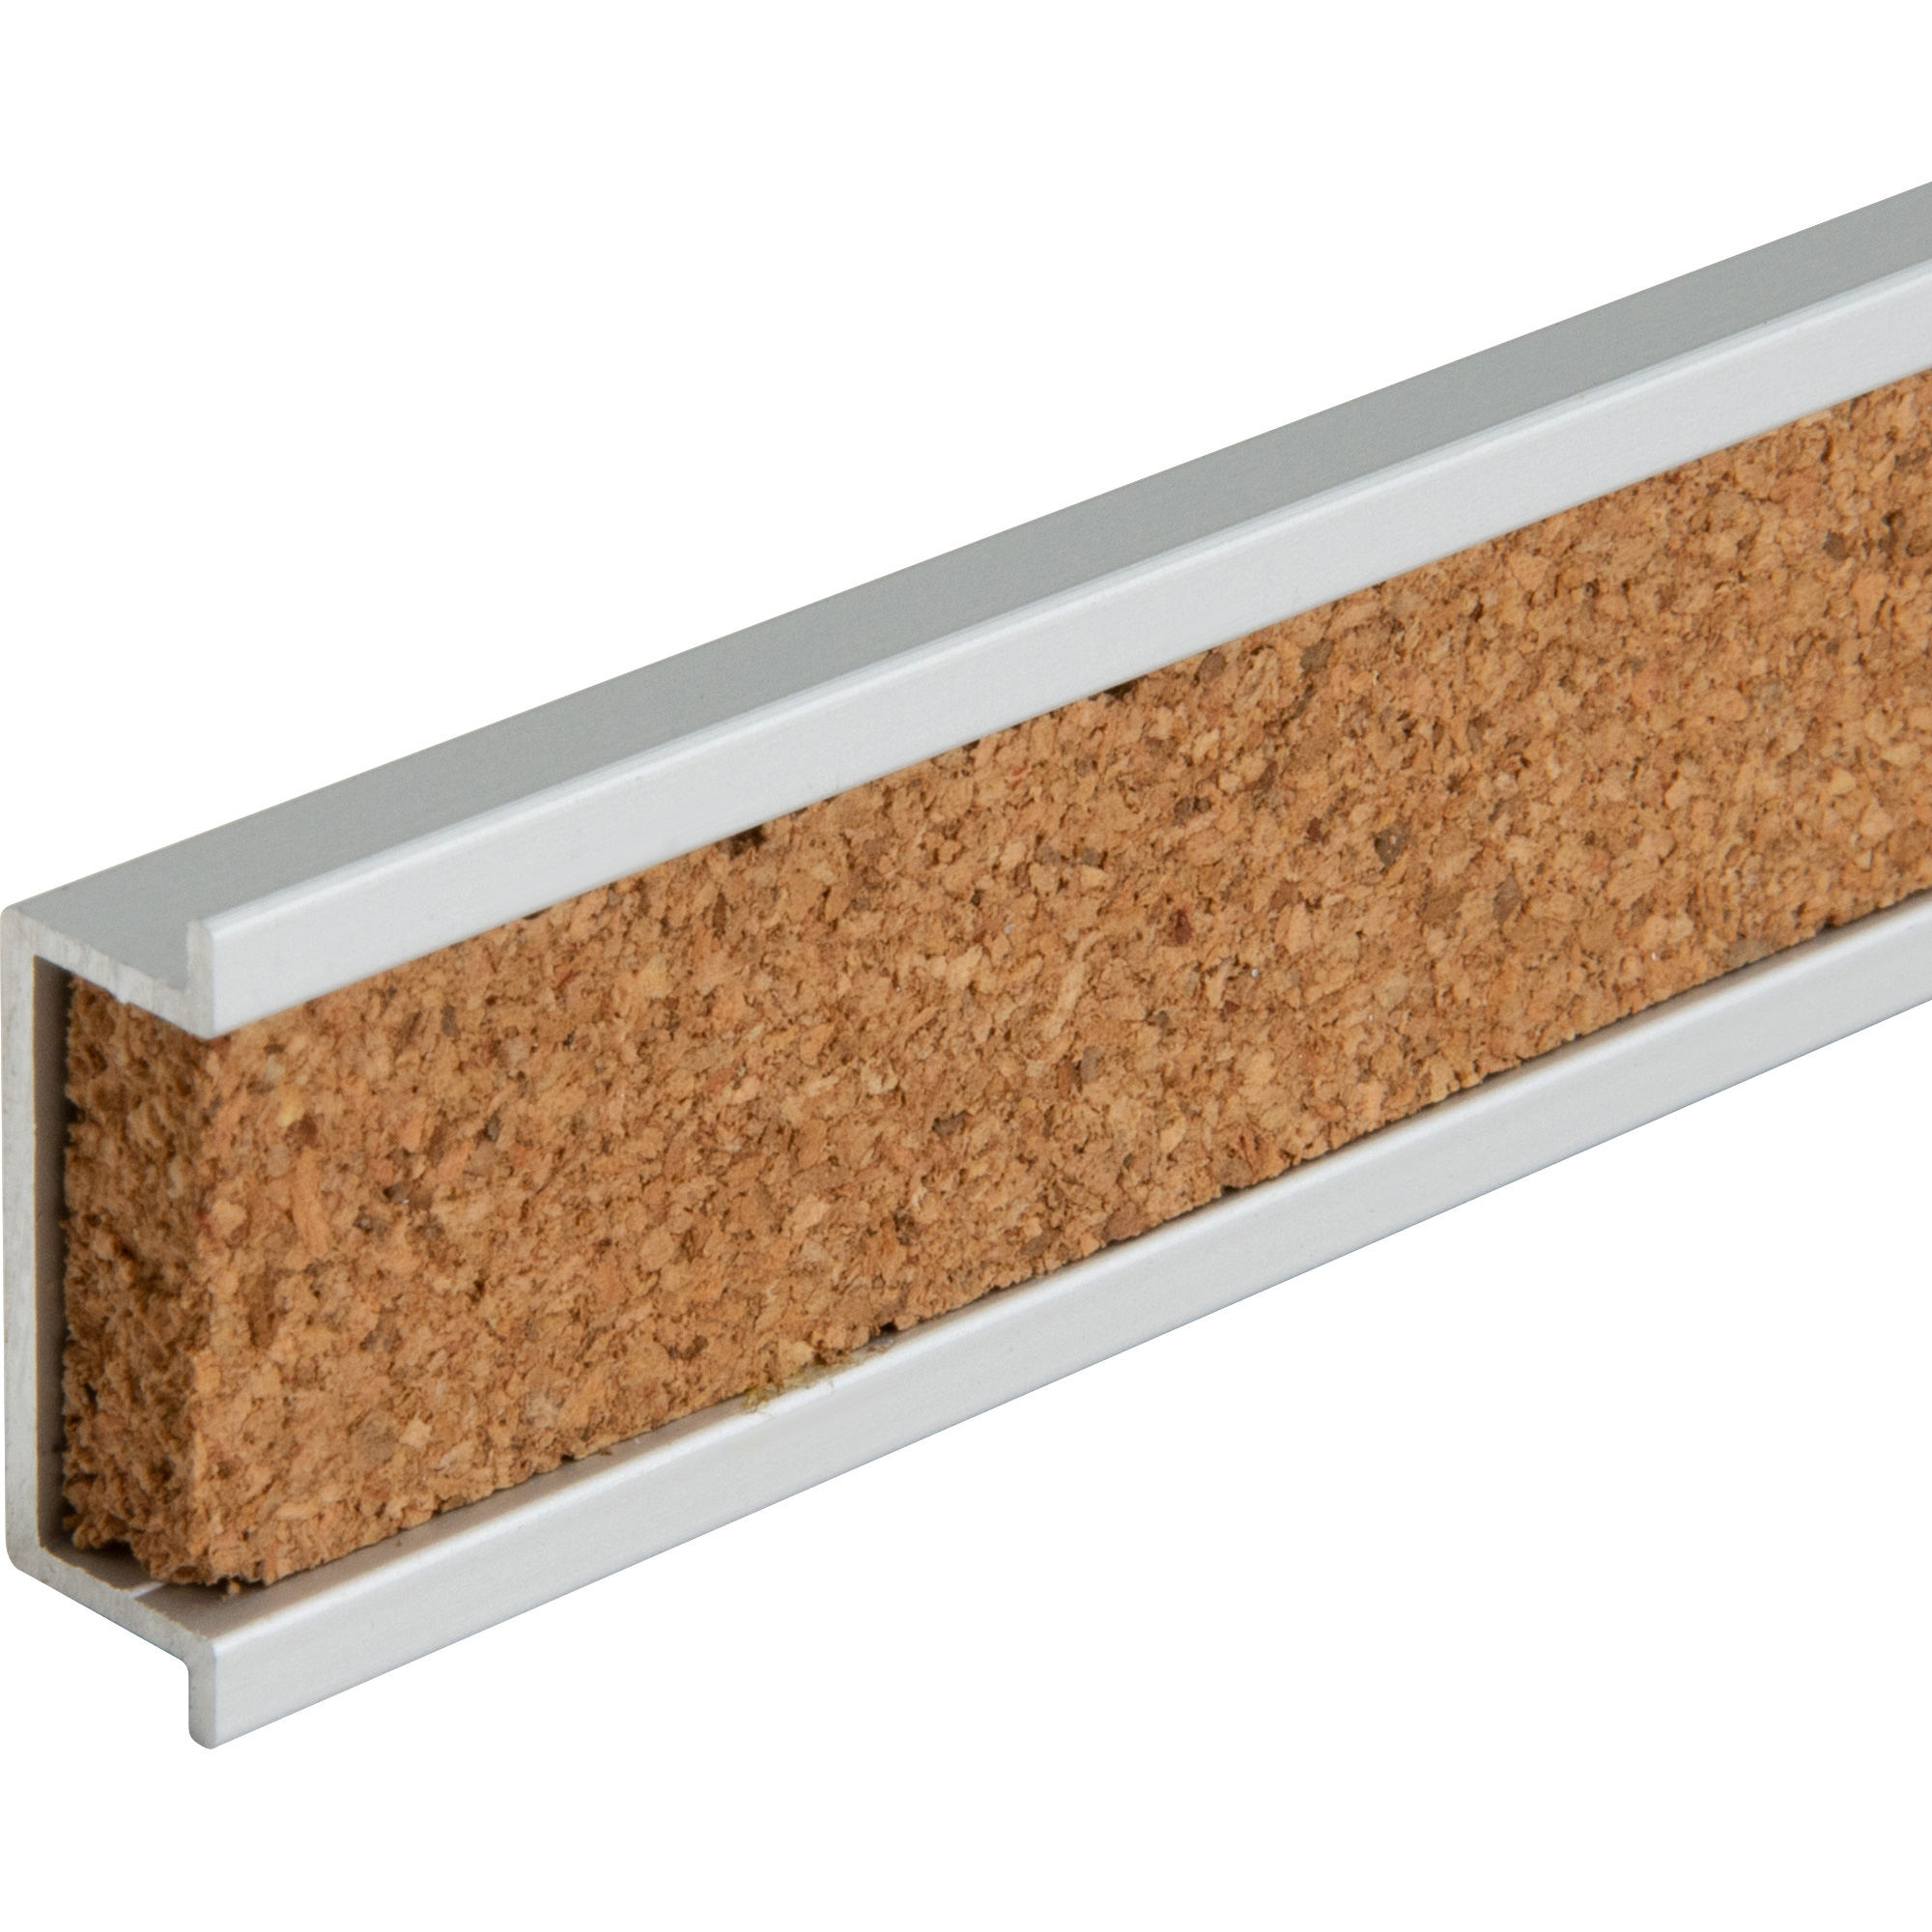 High Density Cork Strip /Bulletin Bar For Office Home And School